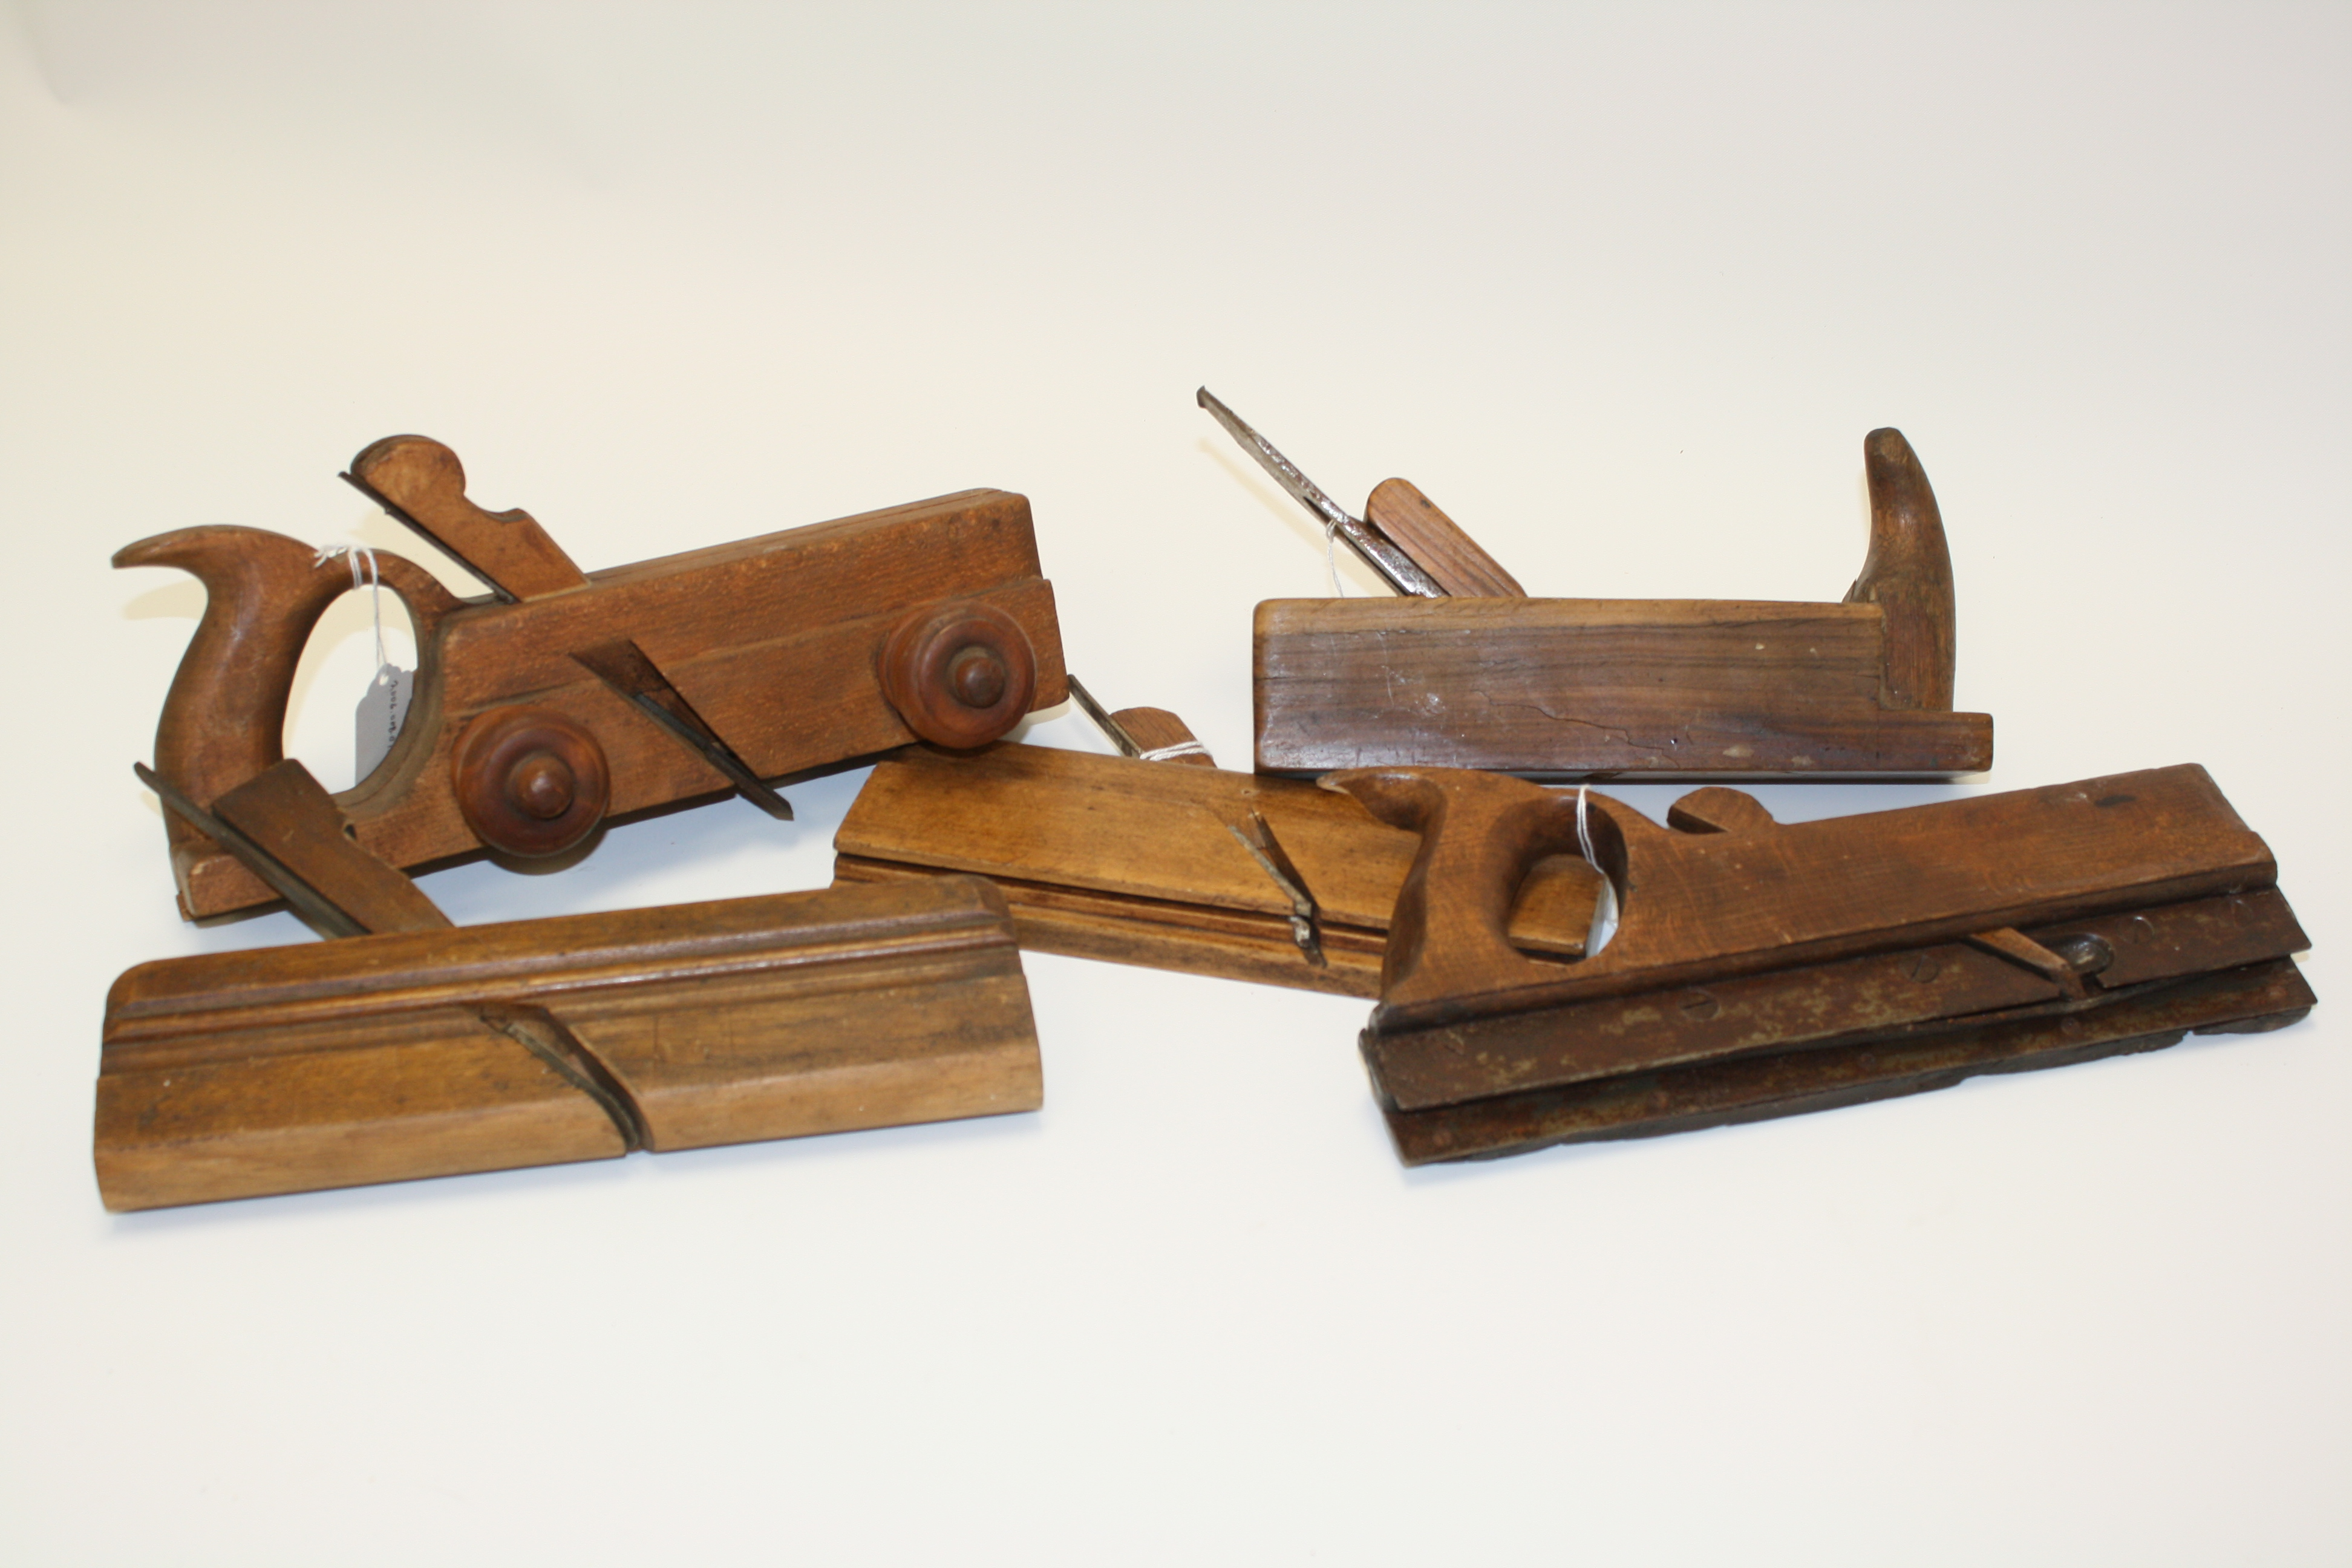 Wooden Hand Planes